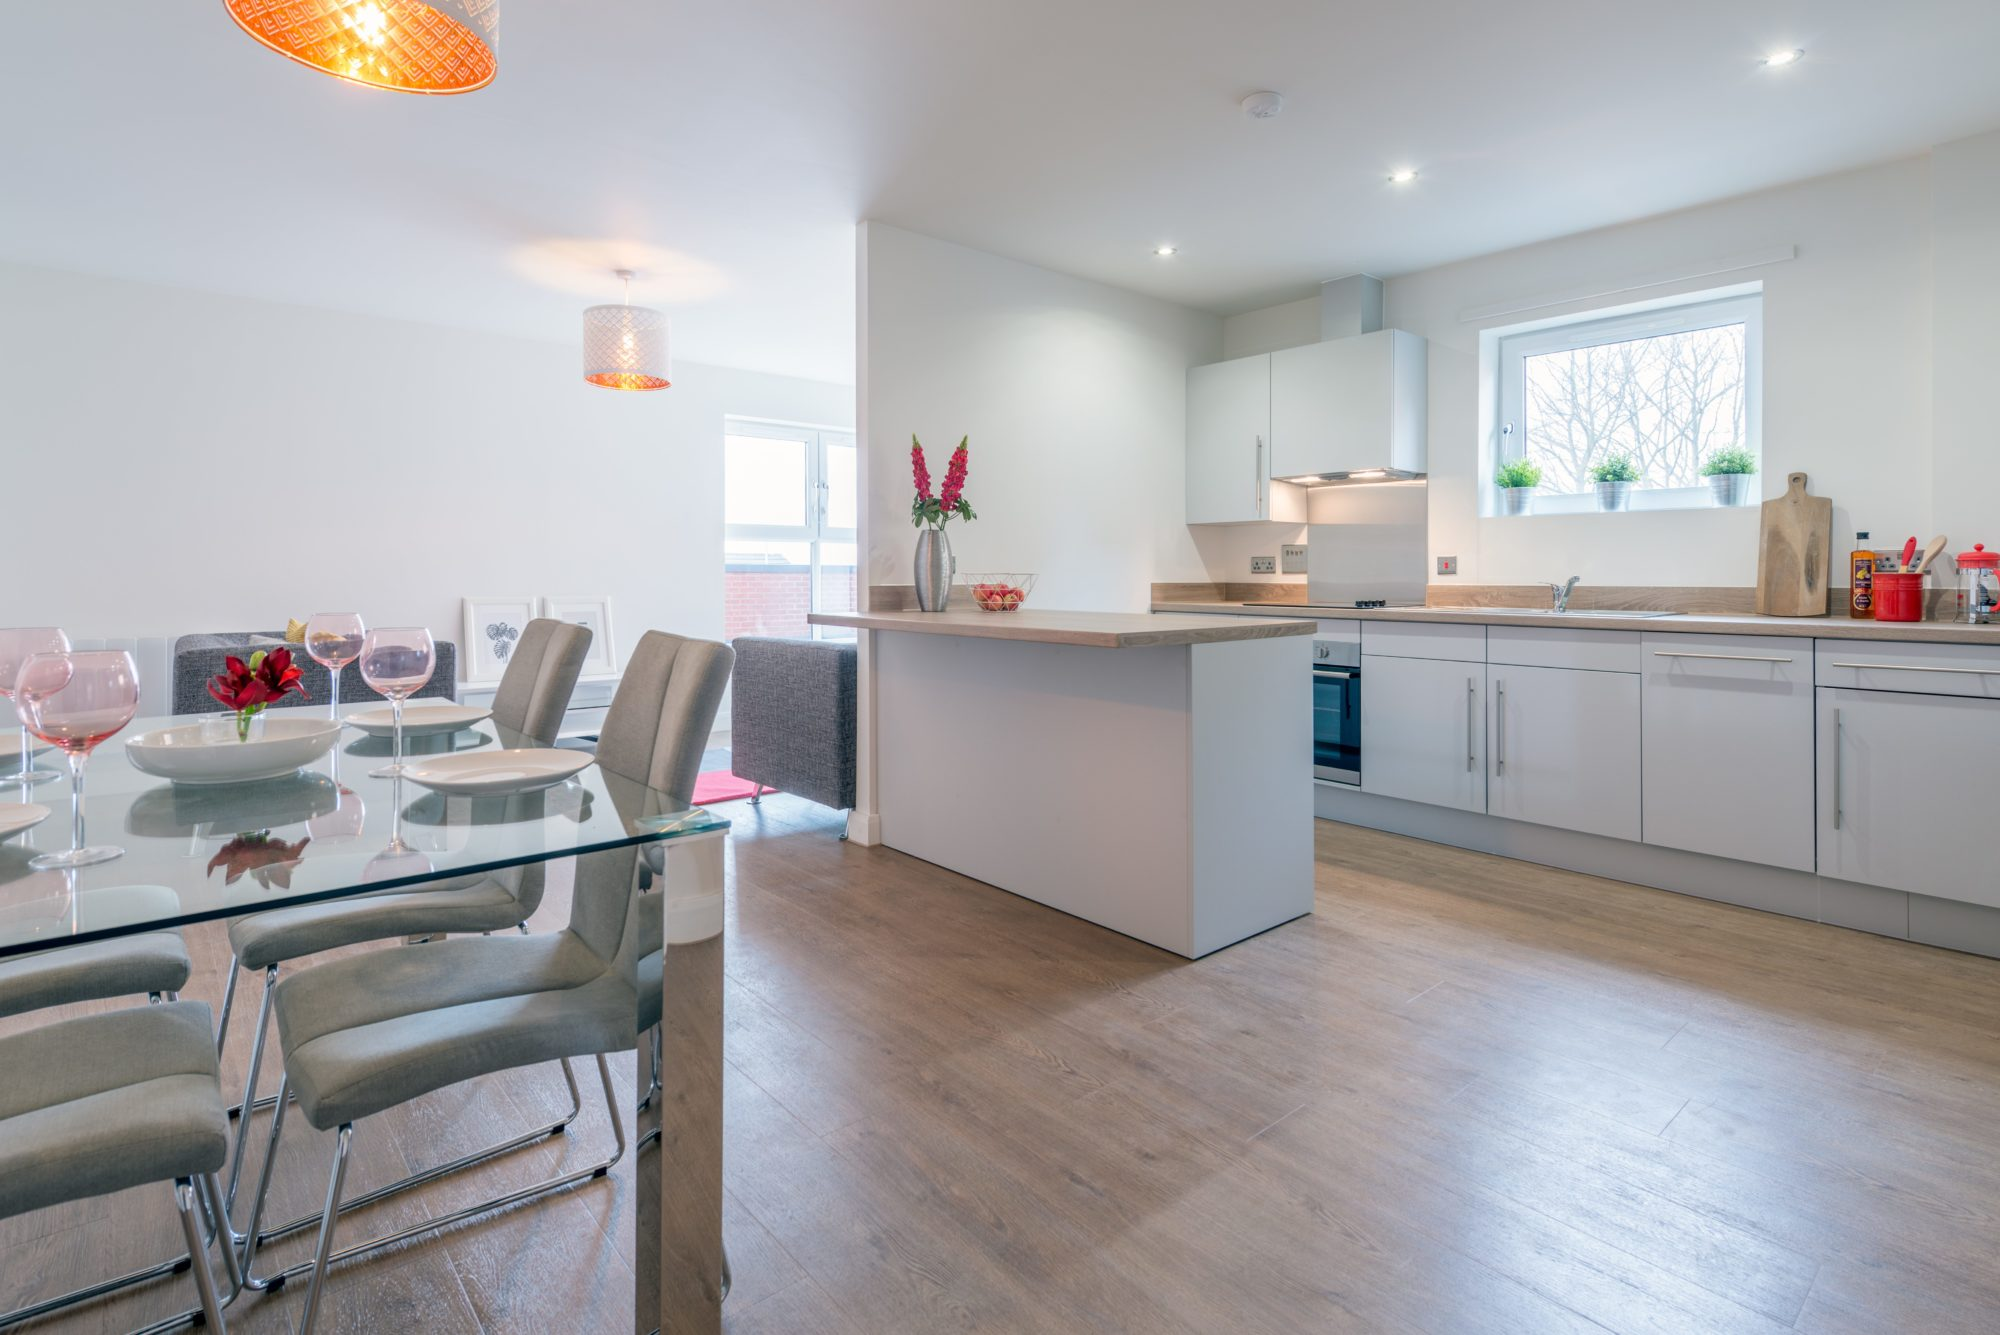 High-quality, modern rental 3-bedroom apartments to rent in Leeds at The Gardens